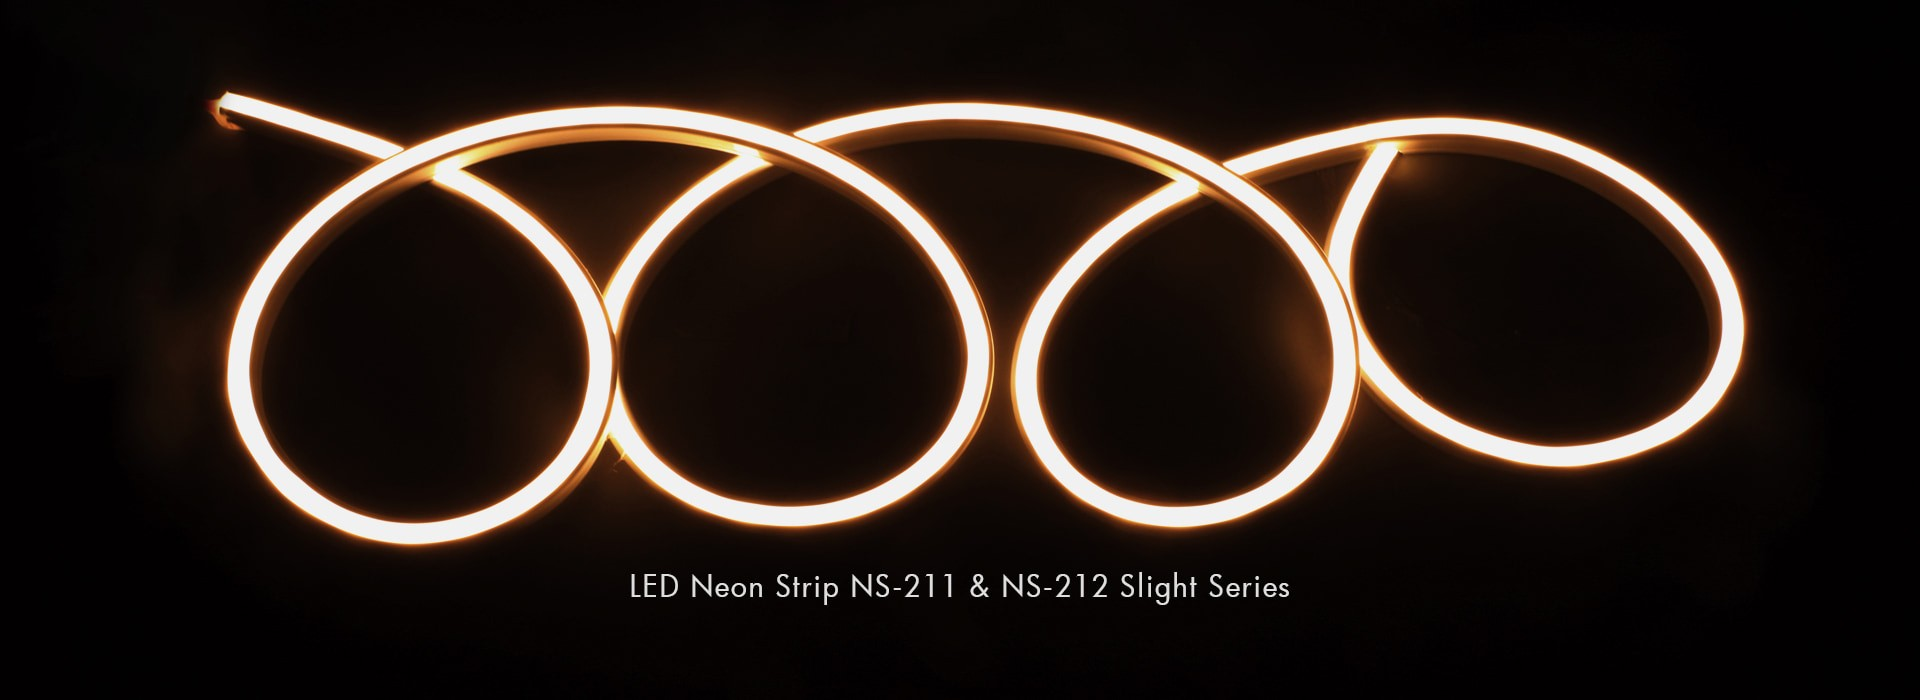 LED Neon Strip NS-211 & NS-212 Slight Serie